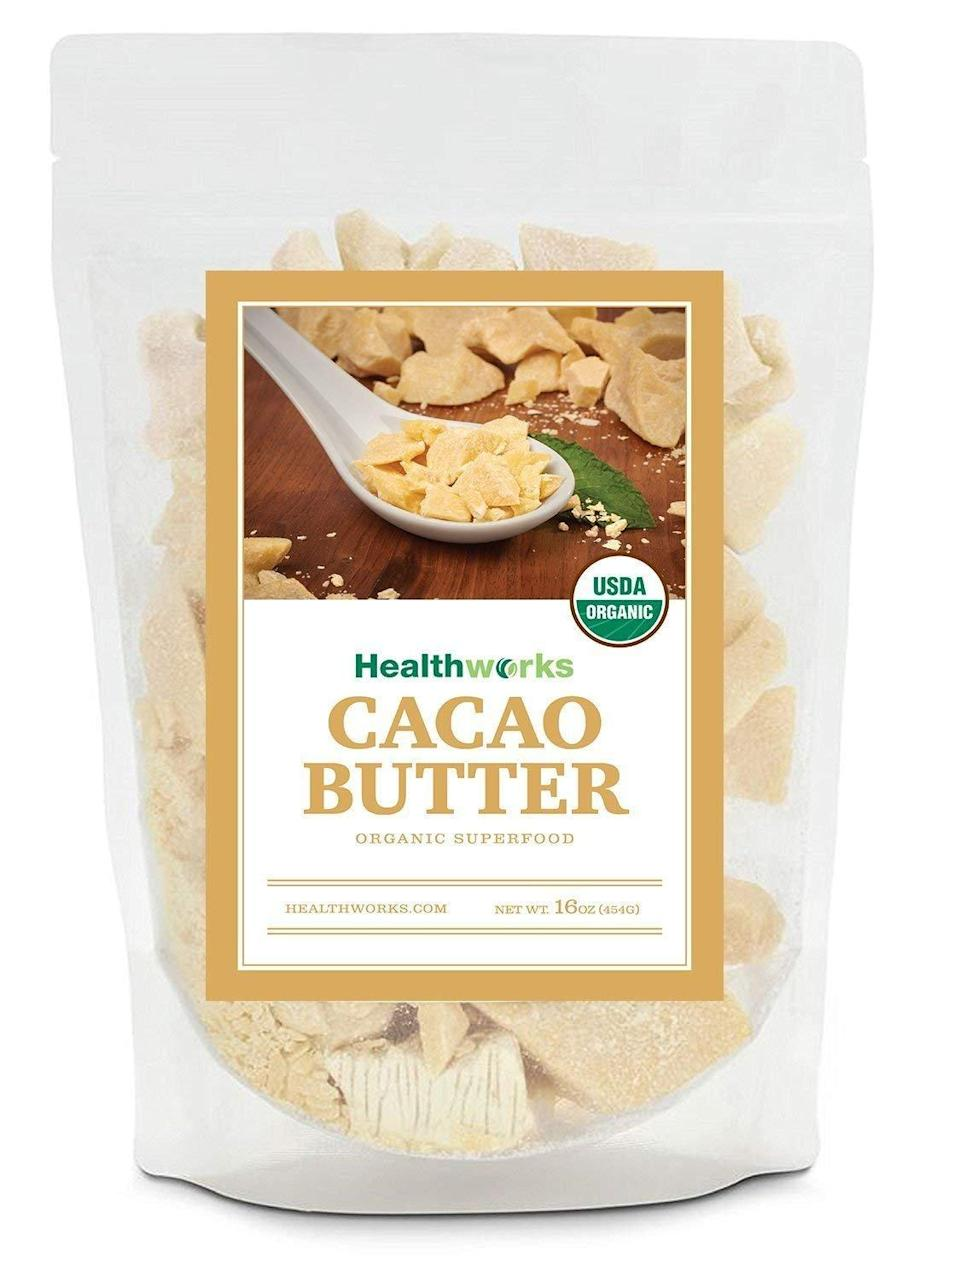 """<p>This <a rel=""""nofollow noopener"""" href=""""https://www.popsugar.com/buy/Healthworks-Cacao-Butter-Organic-349650?p_name=Healthworks%20Cacao%20Butter%20Organic&retailer=amazon.com&price=12&evar1=fit%3Auk&evar9=45059489&evar98=https%3A%2F%2Fwww.popsugar.com%2Ffitness%2Fphoto-gallery%2F45059489%2Fimage%2F45059640%2FHealthworks-Cacao-Butter-Organic&prop13=desktop&pdata=1"""" target=""""_blank"""" data-ylk=""""slk:Healthworks Cacao Butter Organic"""" class=""""link rapid-noclick-resp"""">Healthworks Cacao Butter Organic</a> ($12, originally $15) is an unrefined sweet butter that is ideal for making your own creamer or chocolate. It has a delicious, sweet smell that you'll love mixing into meals.</p>"""